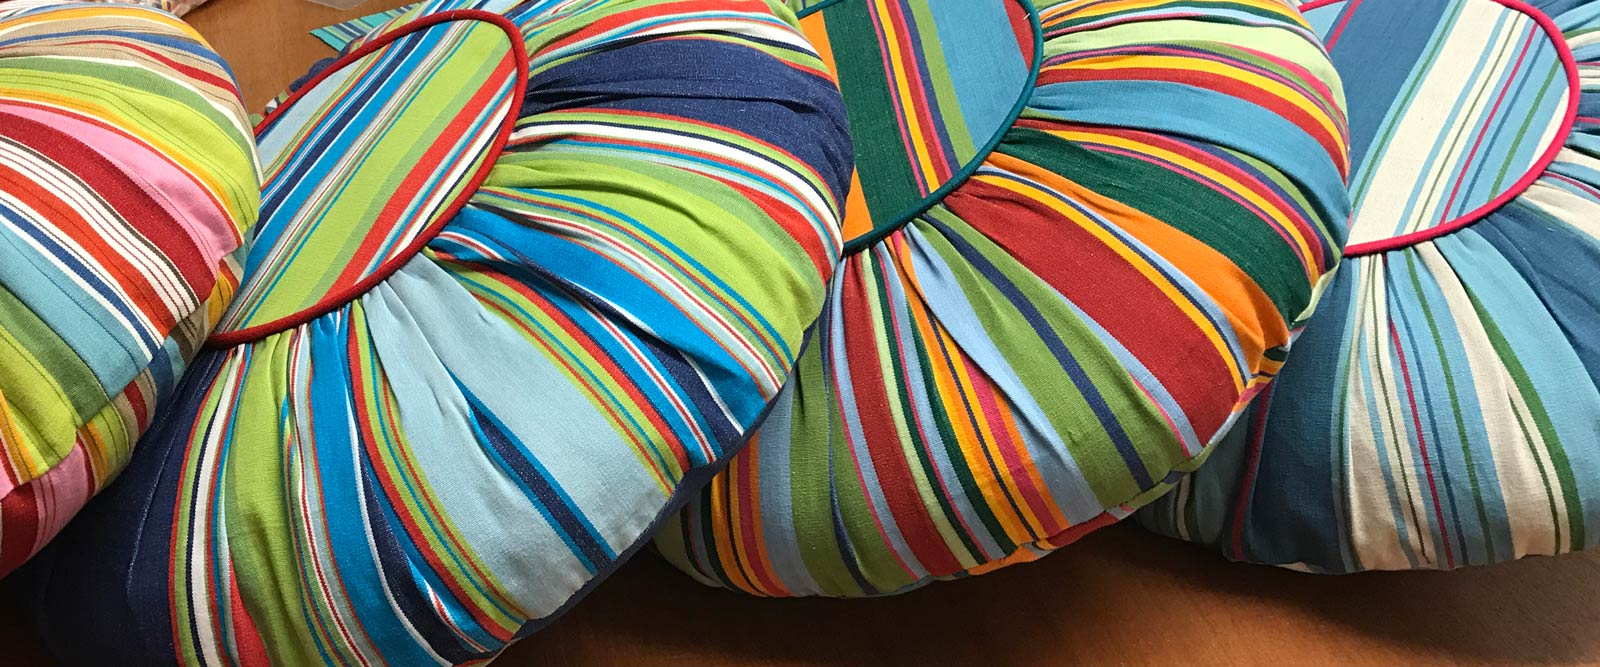 Multi Stripe Round Cushions